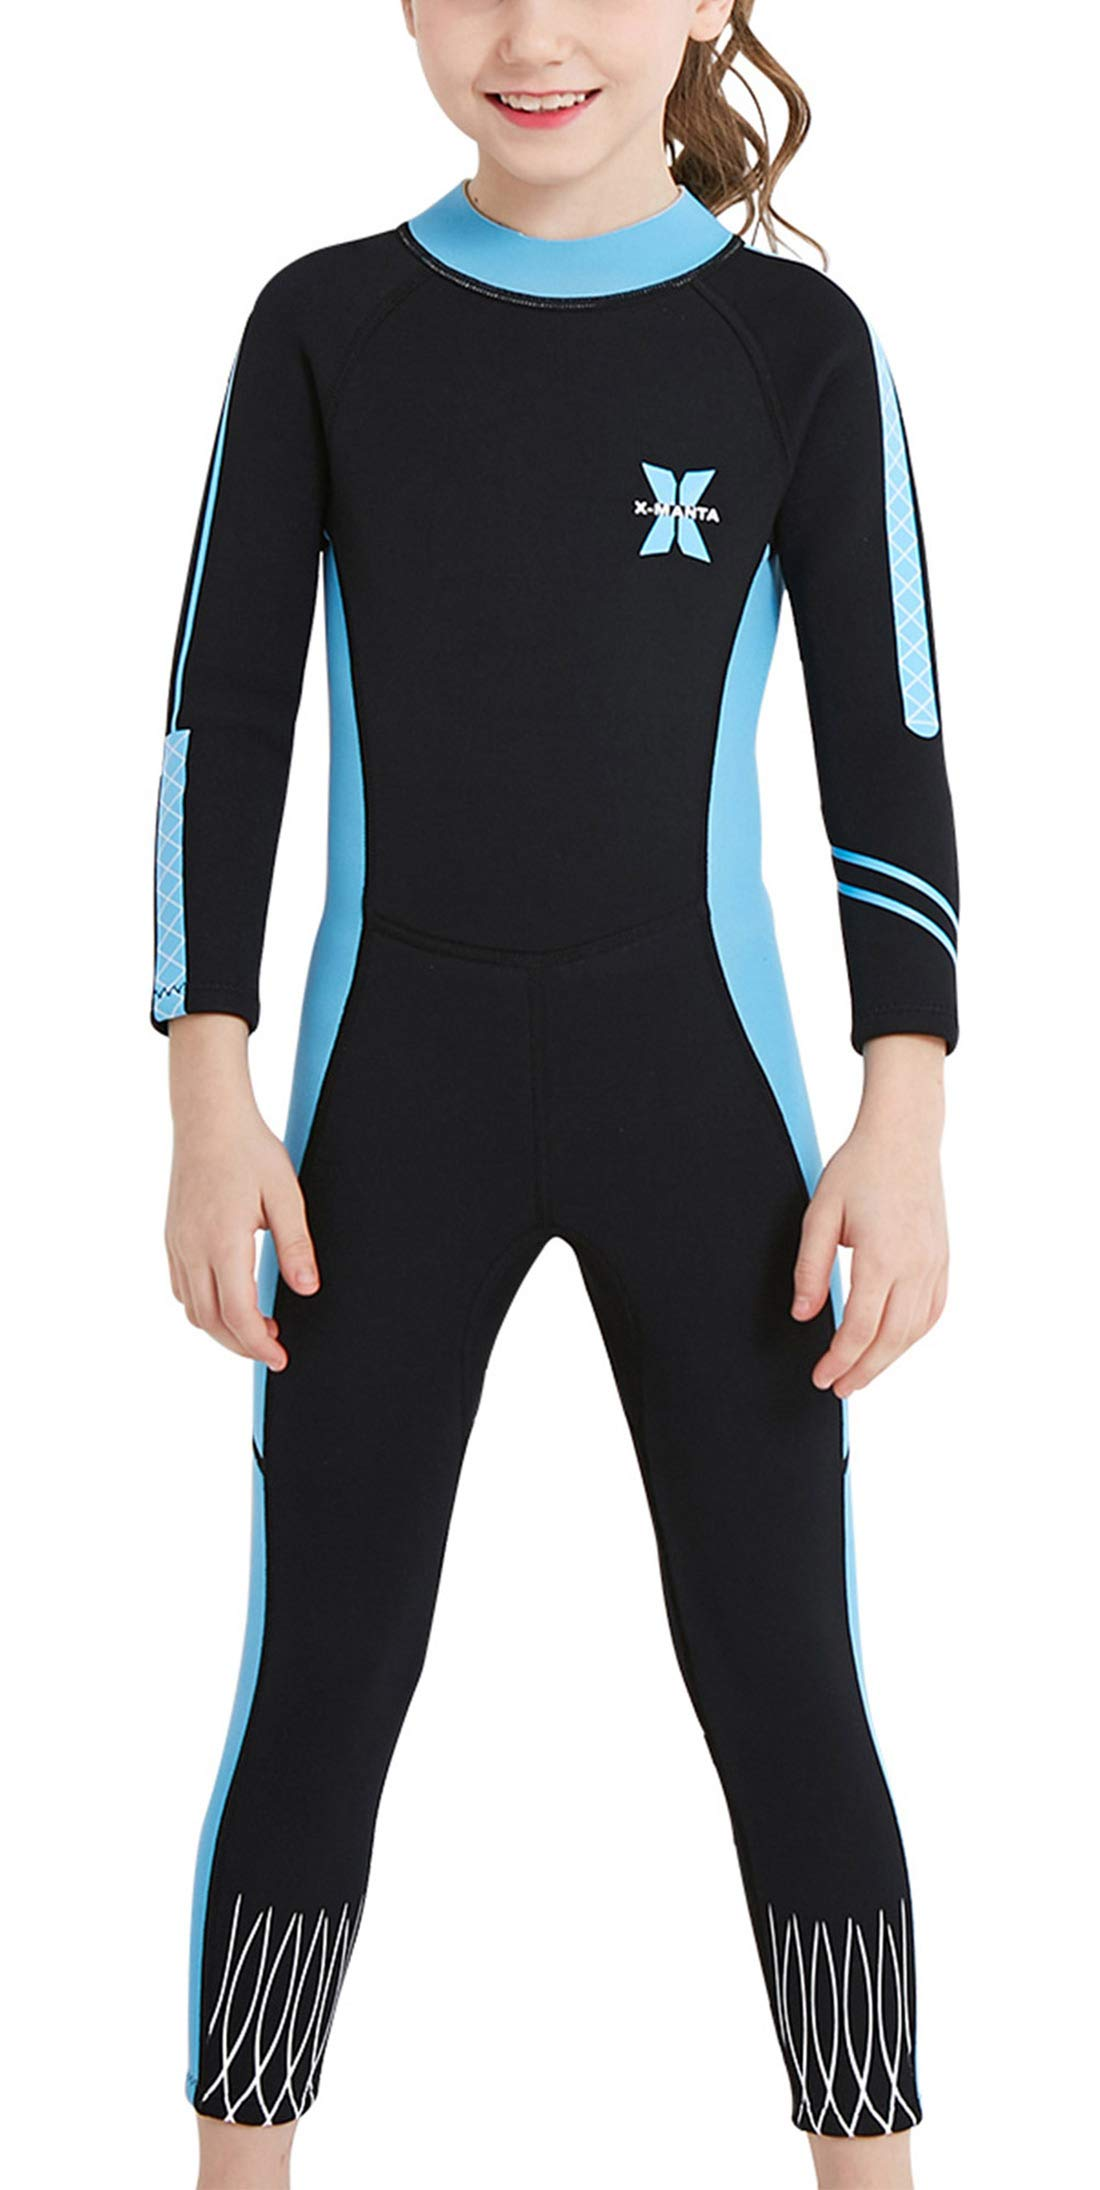 DIVE & SAIL Girls Long Sleeve Wetsuit Thermal Warm One Piece Swimsuit UPF 50+ Sun Protection Soft Swimwear Black M